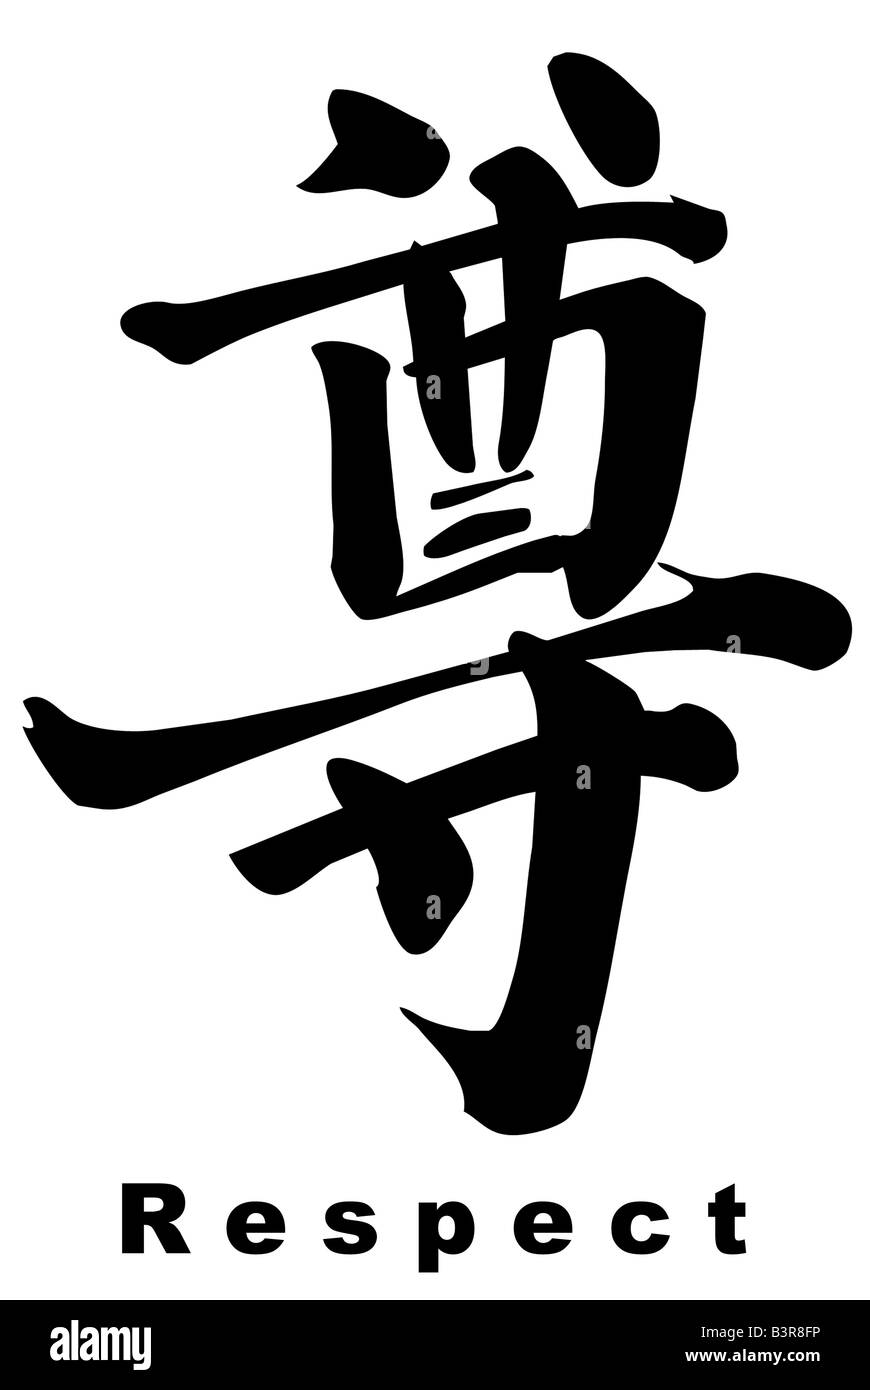 chinese calligraphy:'respect' - Stock Image